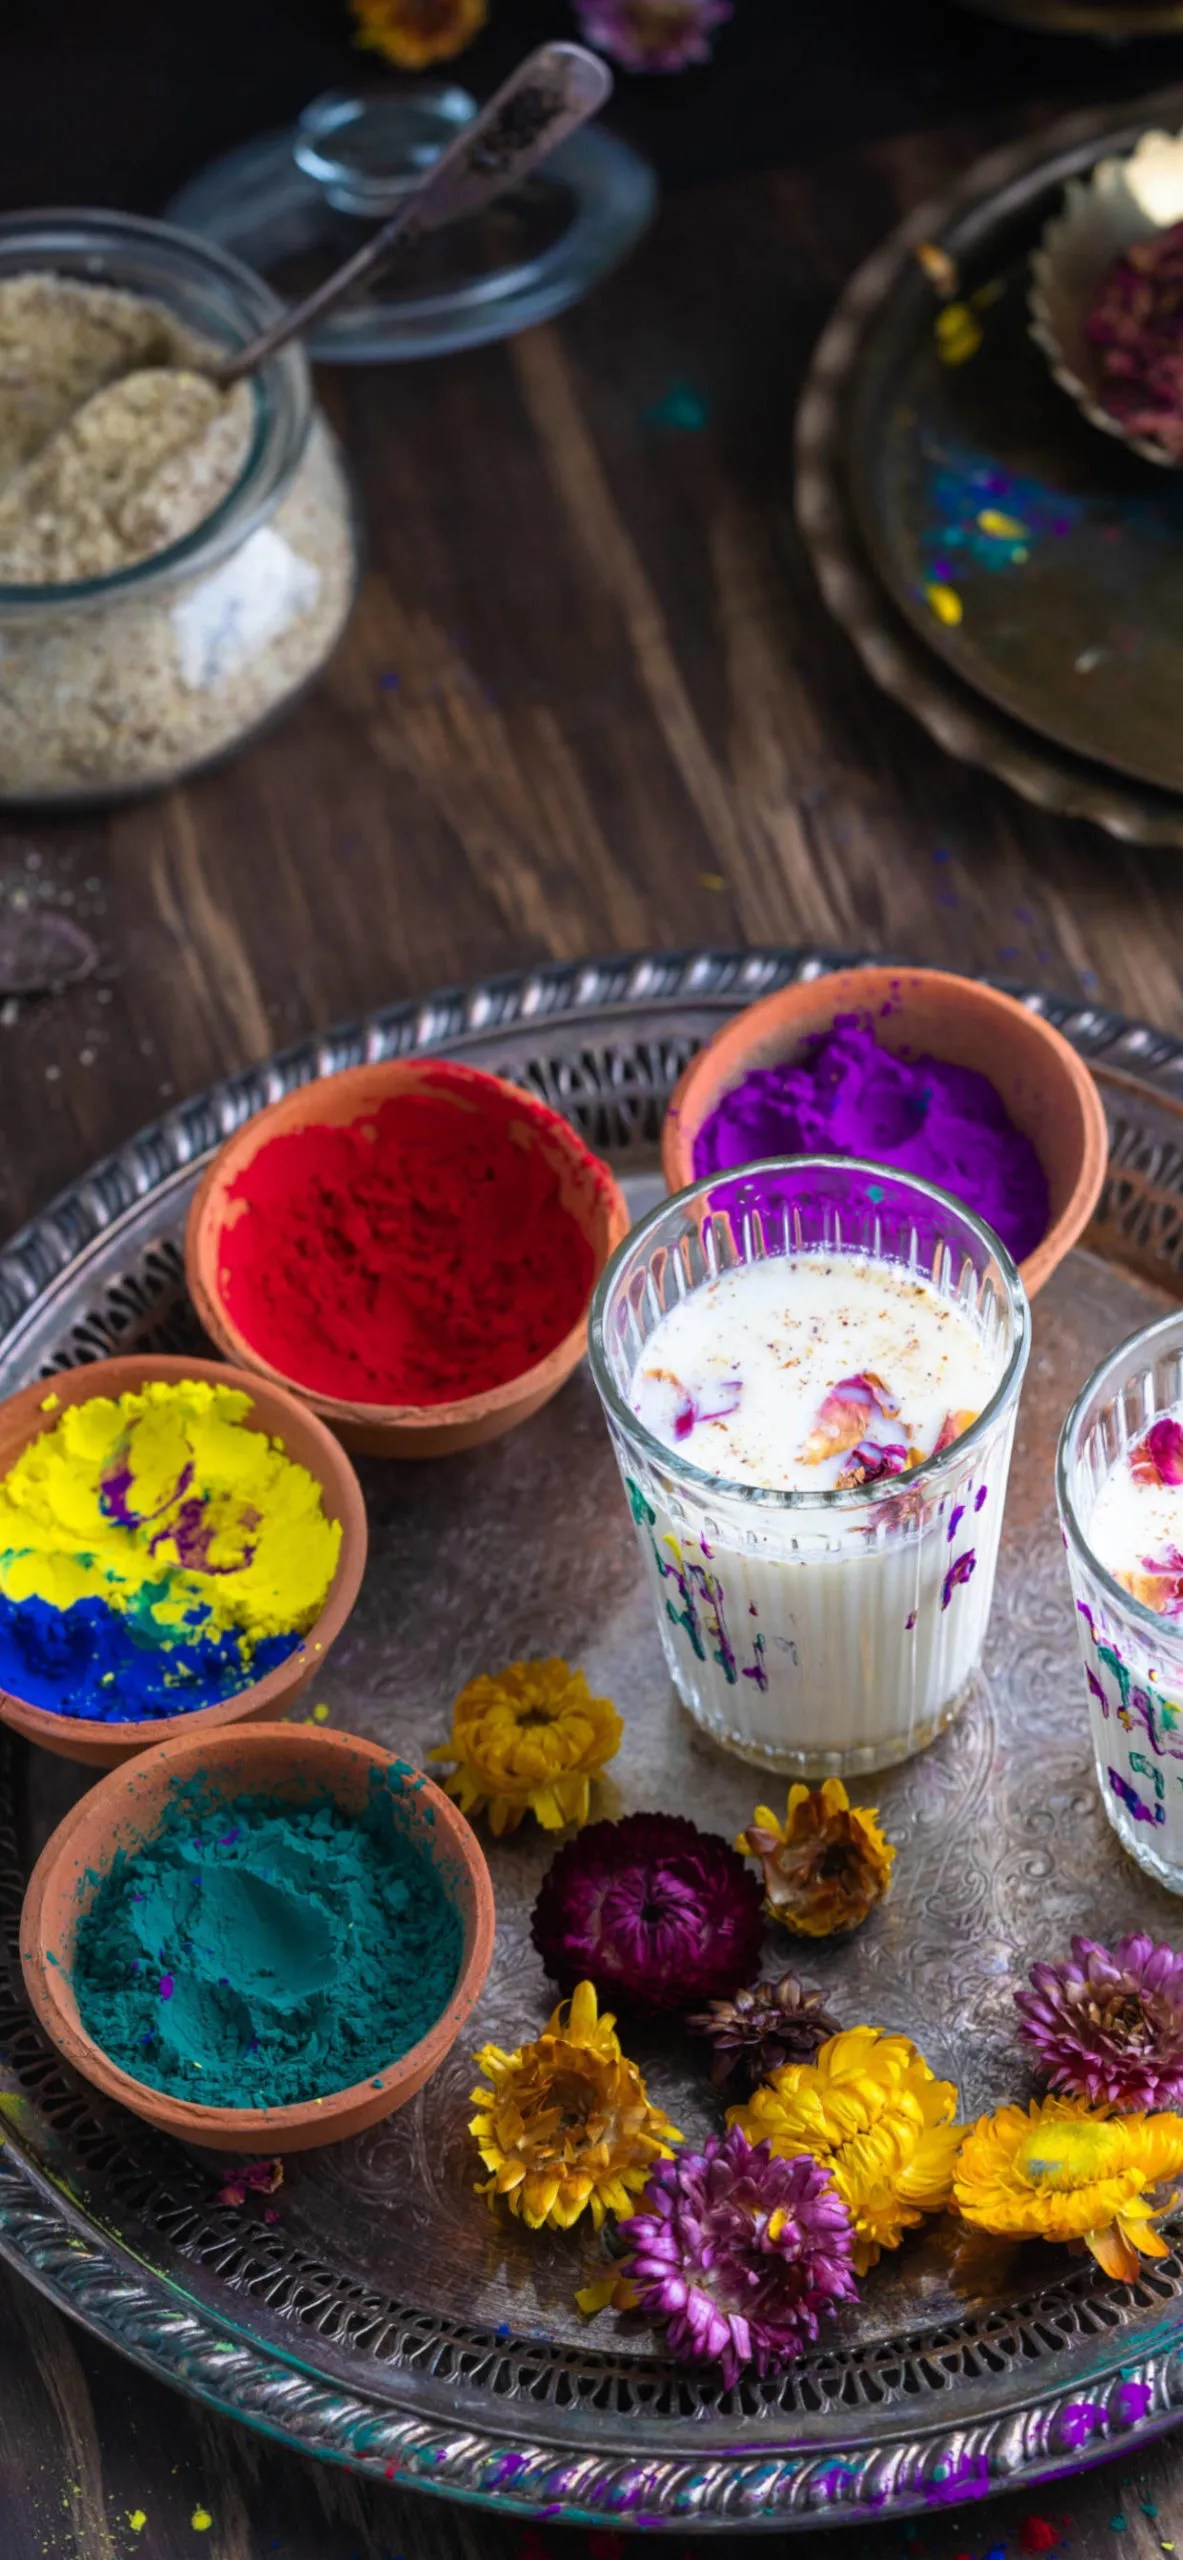 iPhone wallpapers india holi colors scaled India